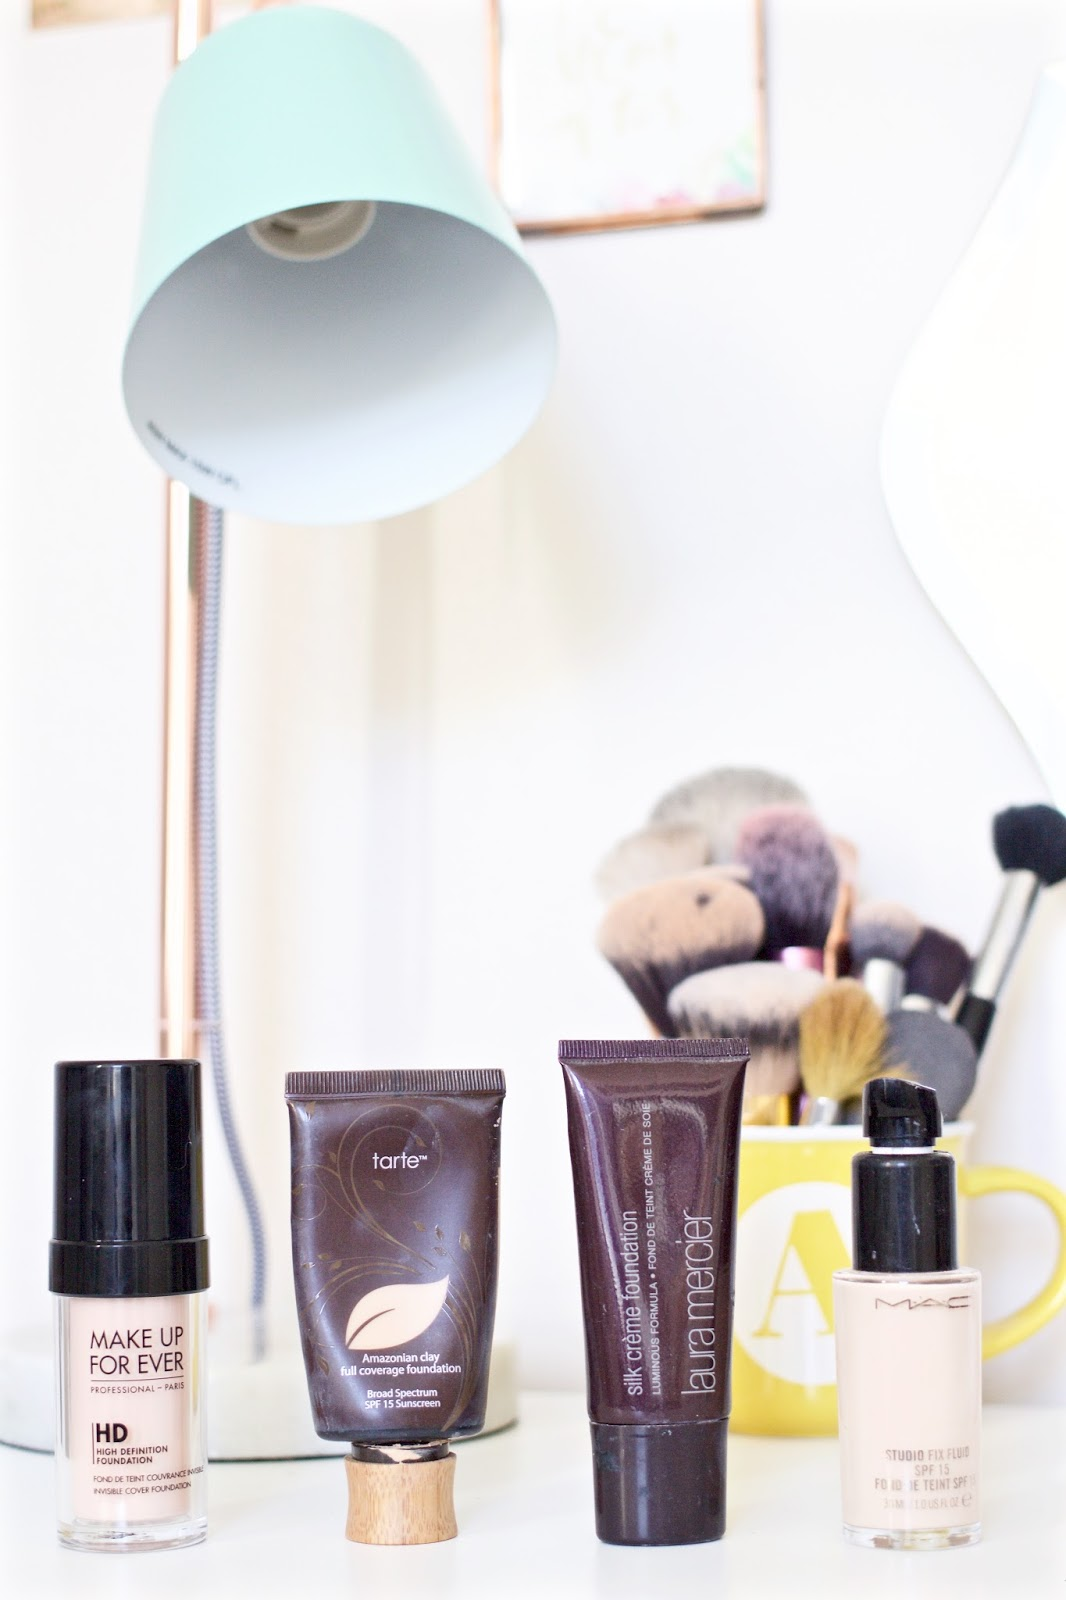 Top Foundations For Those Pale Girl Probs Blush Noise Mille Shopia Creme Beige M What Are You Favourite